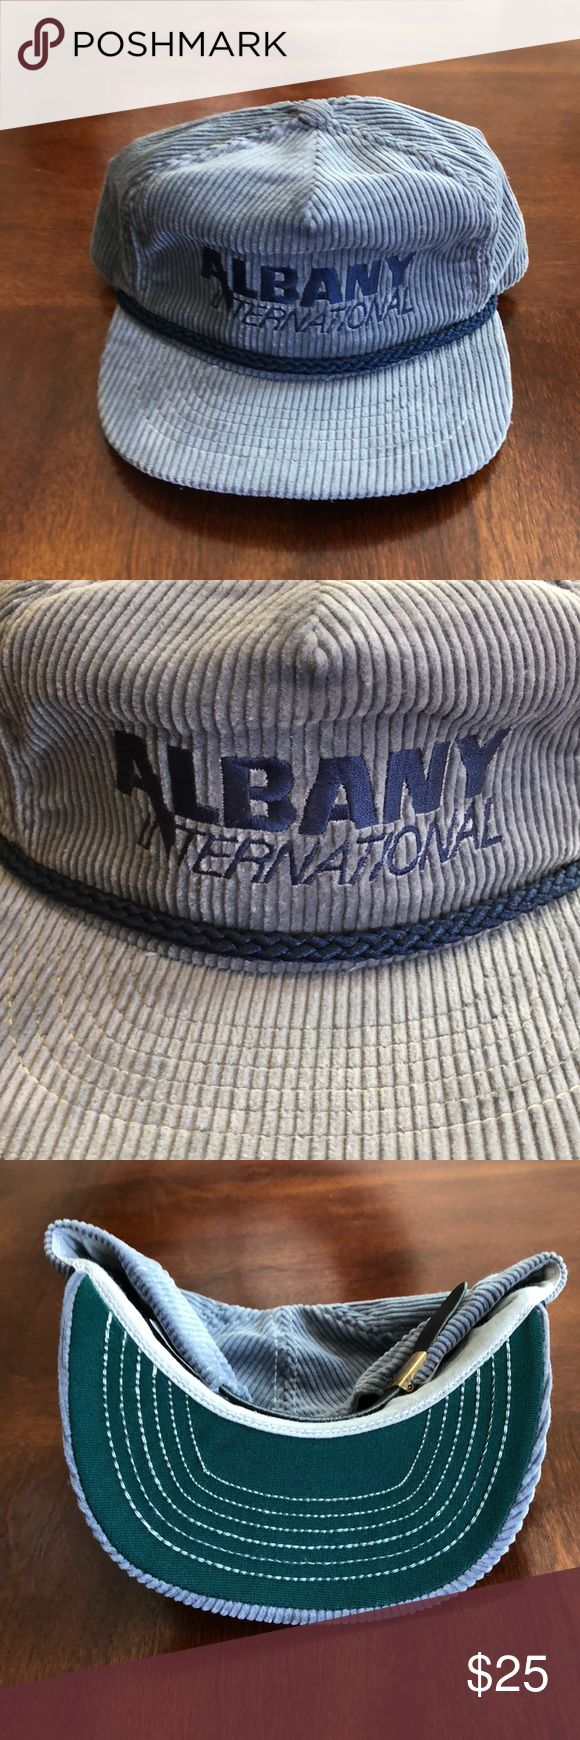 Albany International Vintage corduroy hat Vintage grey and blue Albany International corduroy hat. I love the colors on this hat great retro hat. Great condition. Accessories Hats